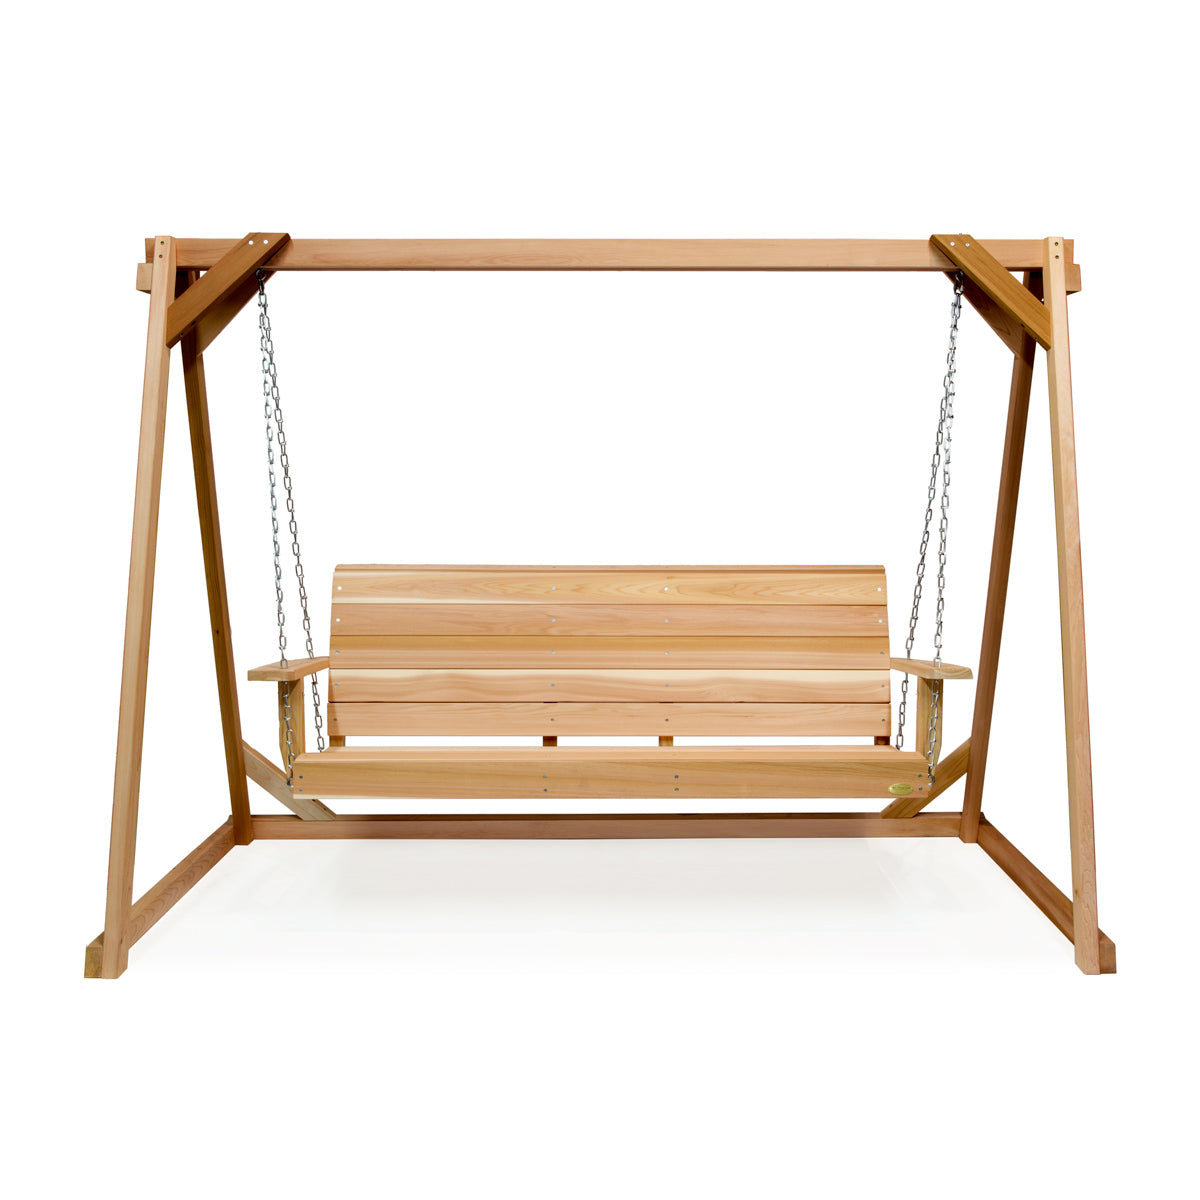 Porch Swing Set 8' Swing A-Frame and 5' Swing Cedar - Swings and More